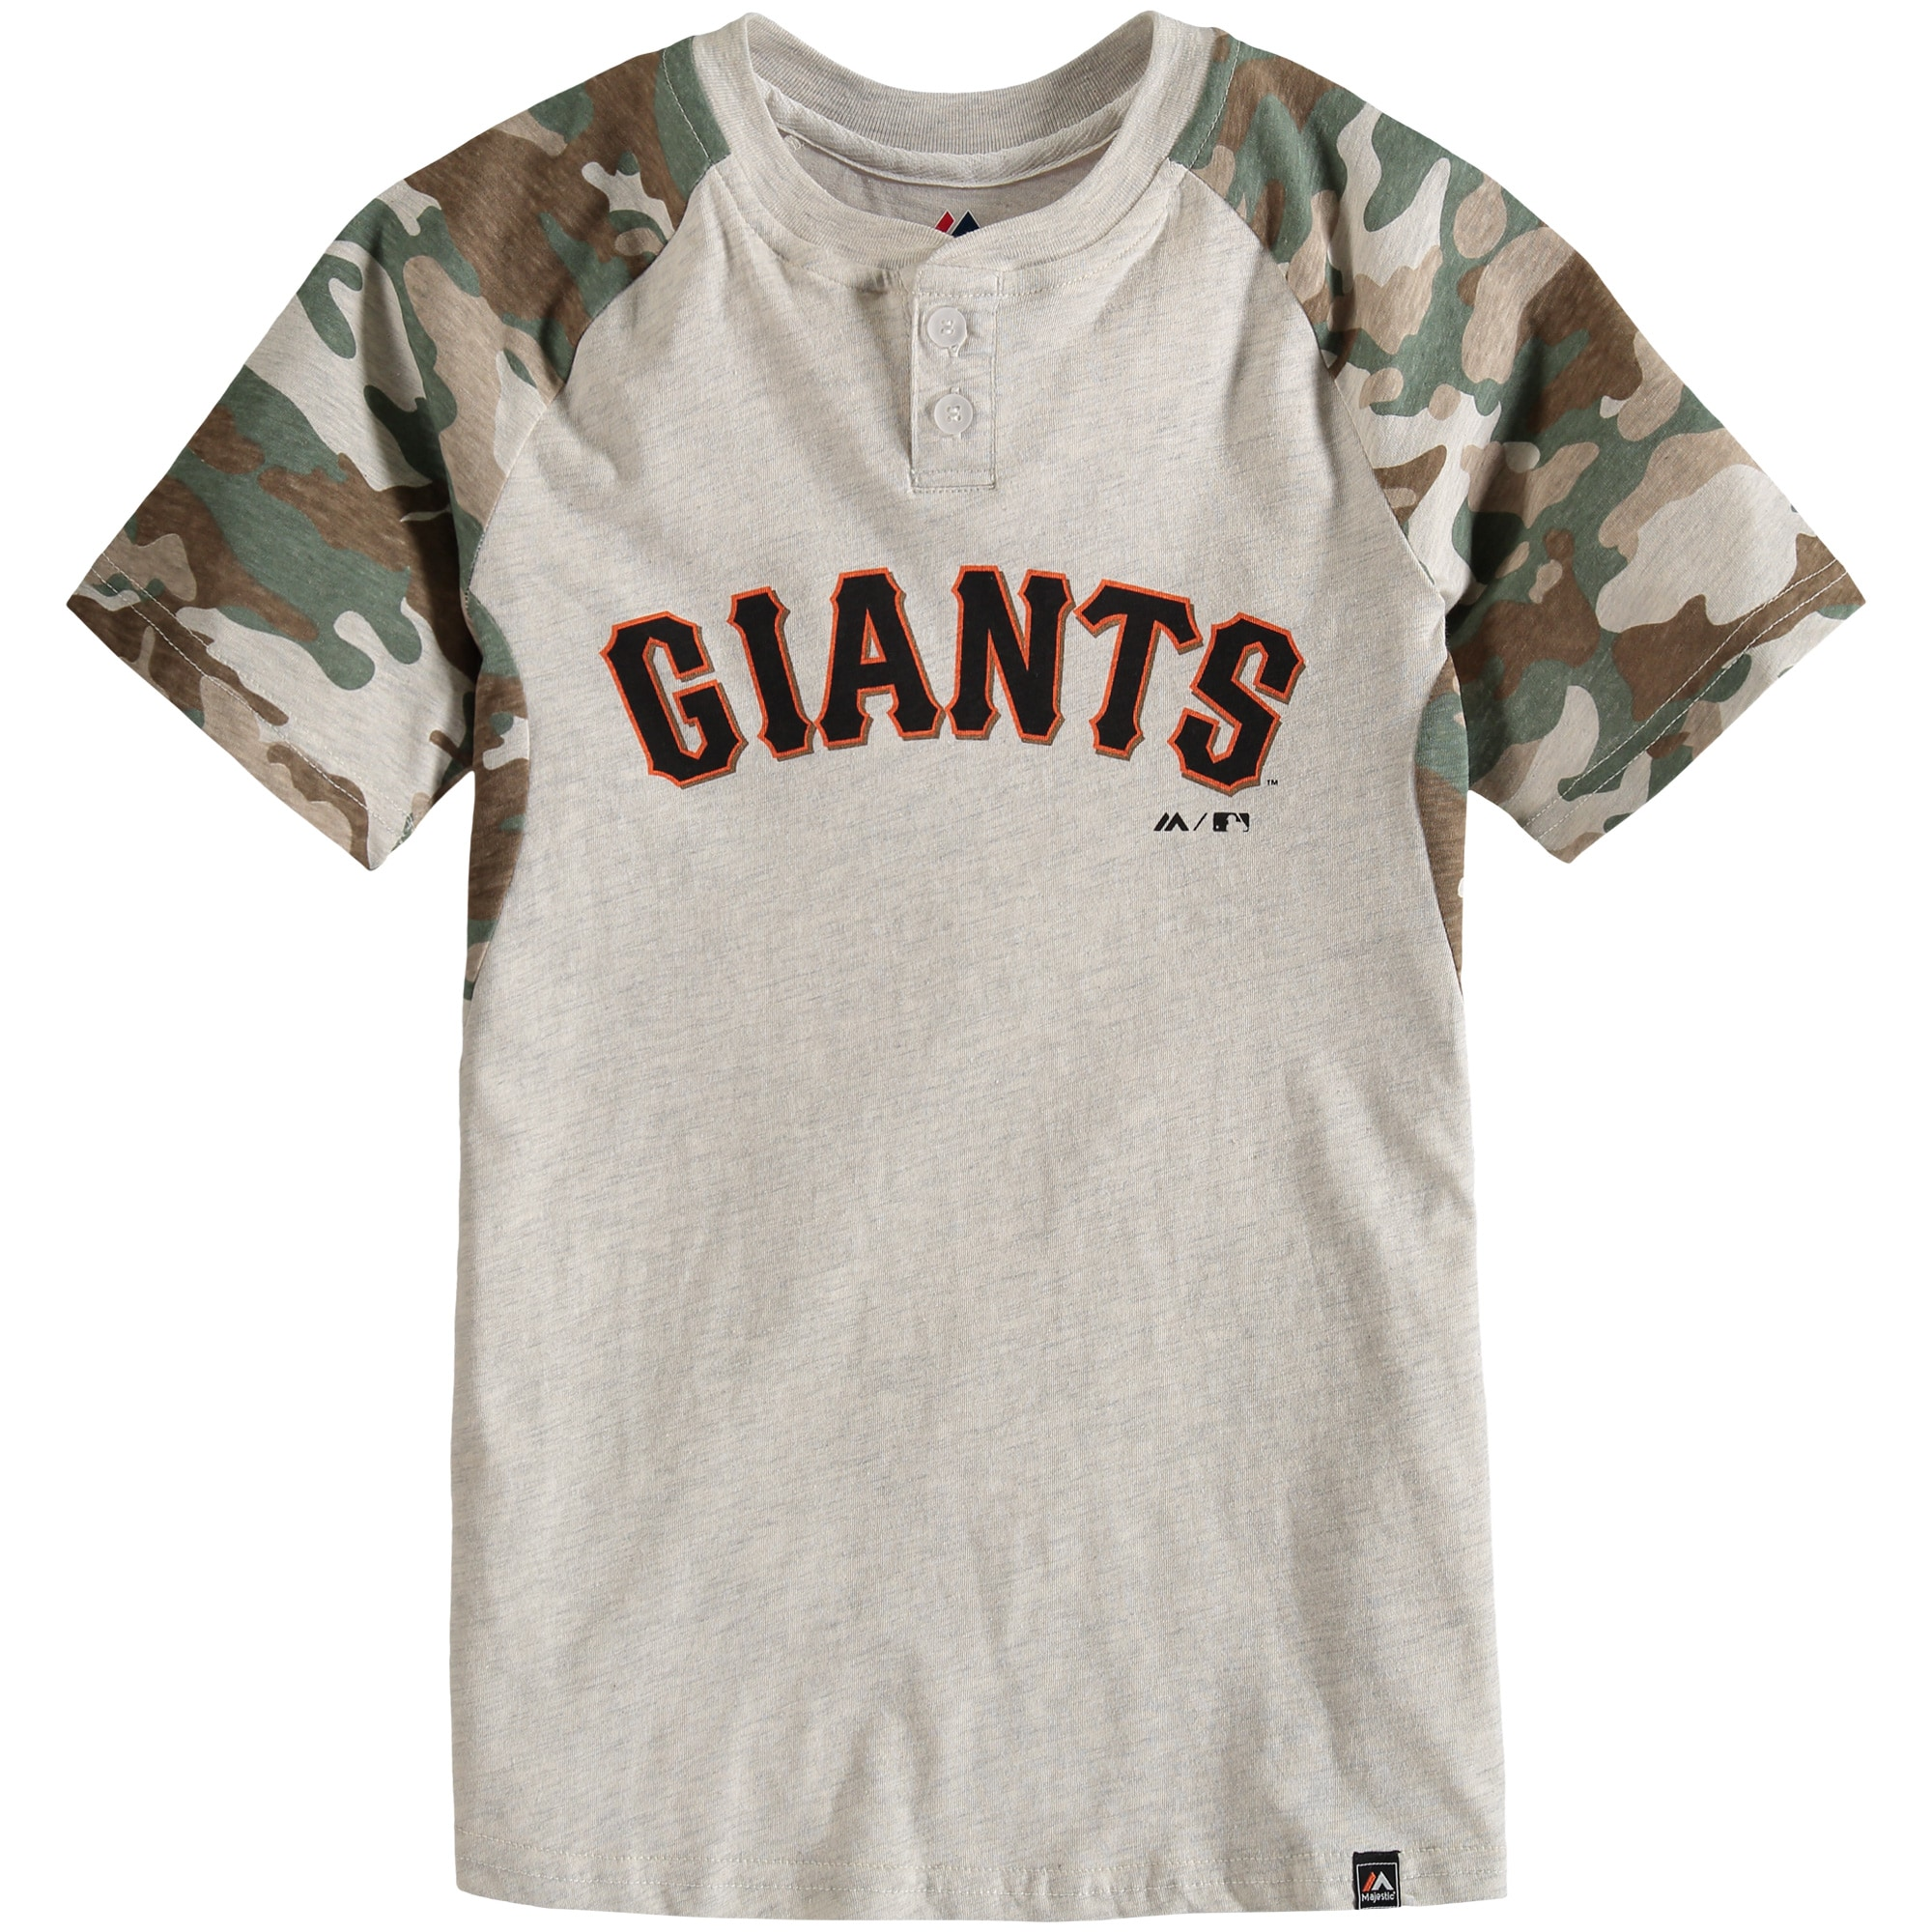 San Francisco Giants Majestic Youth Base Stealer Henley T-Shirt - Cream/Camo